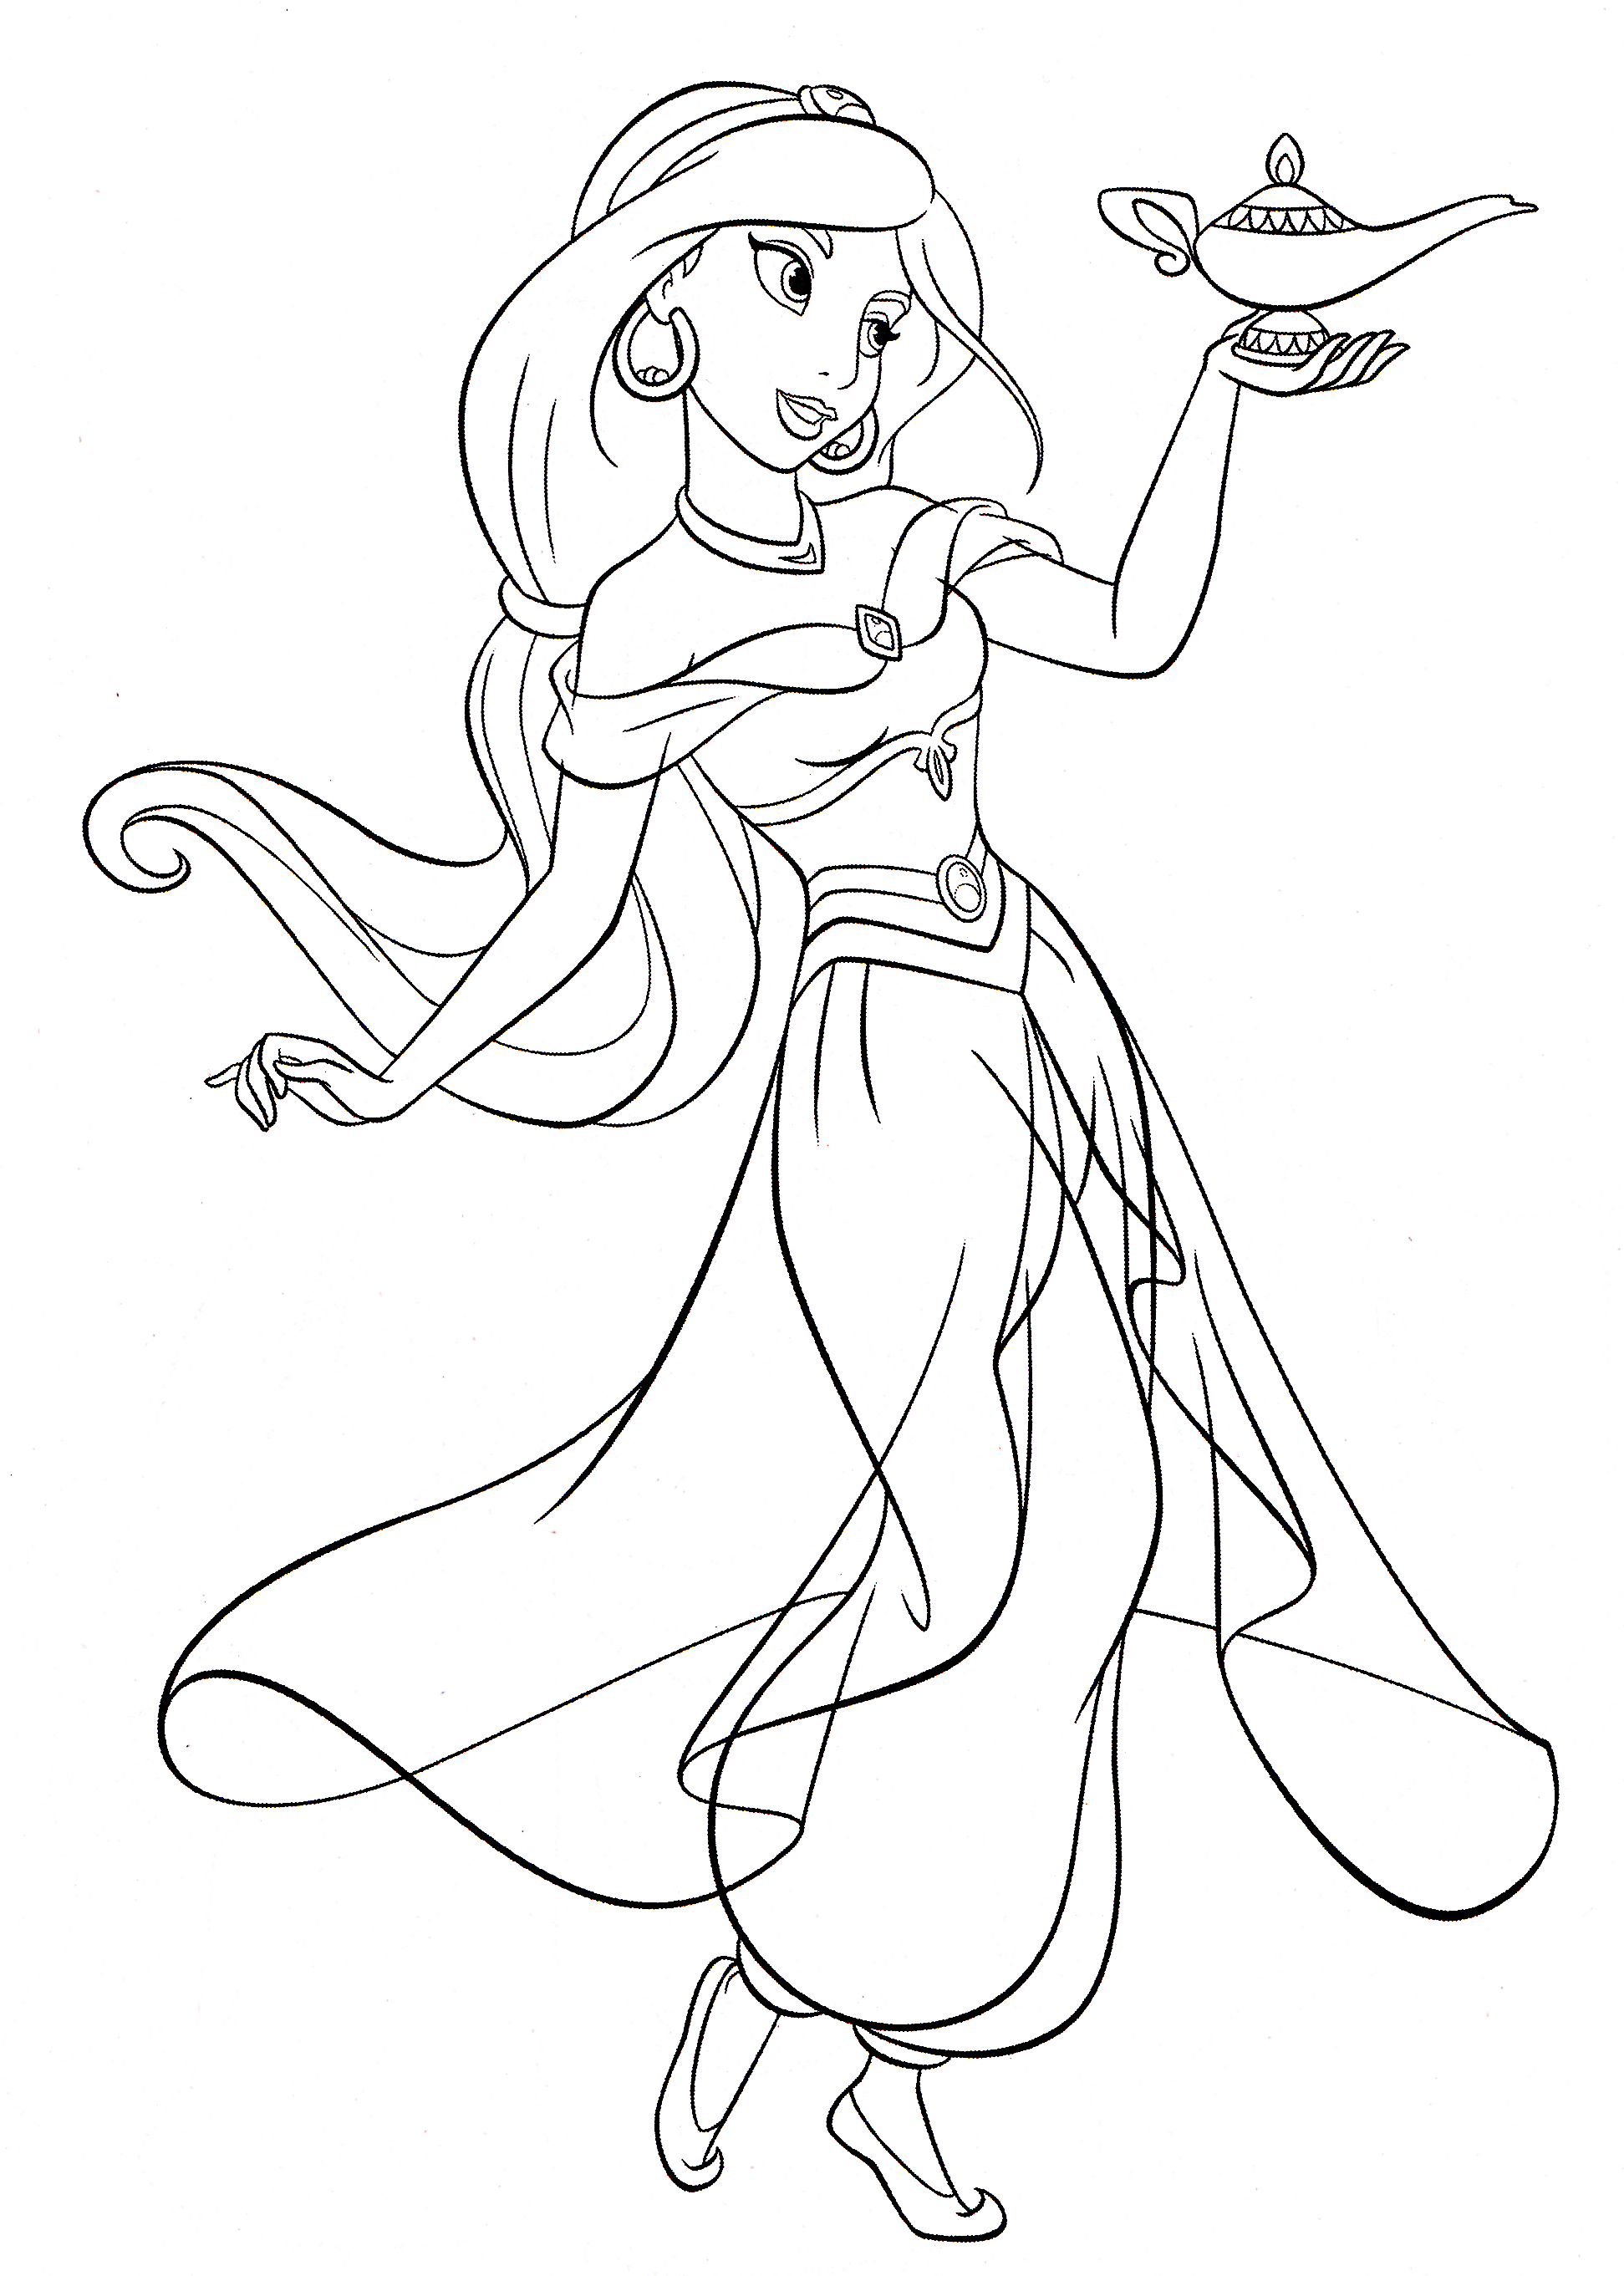 Jasmine Coloring Pages To Print Archives - Free Coloring Pages For ...